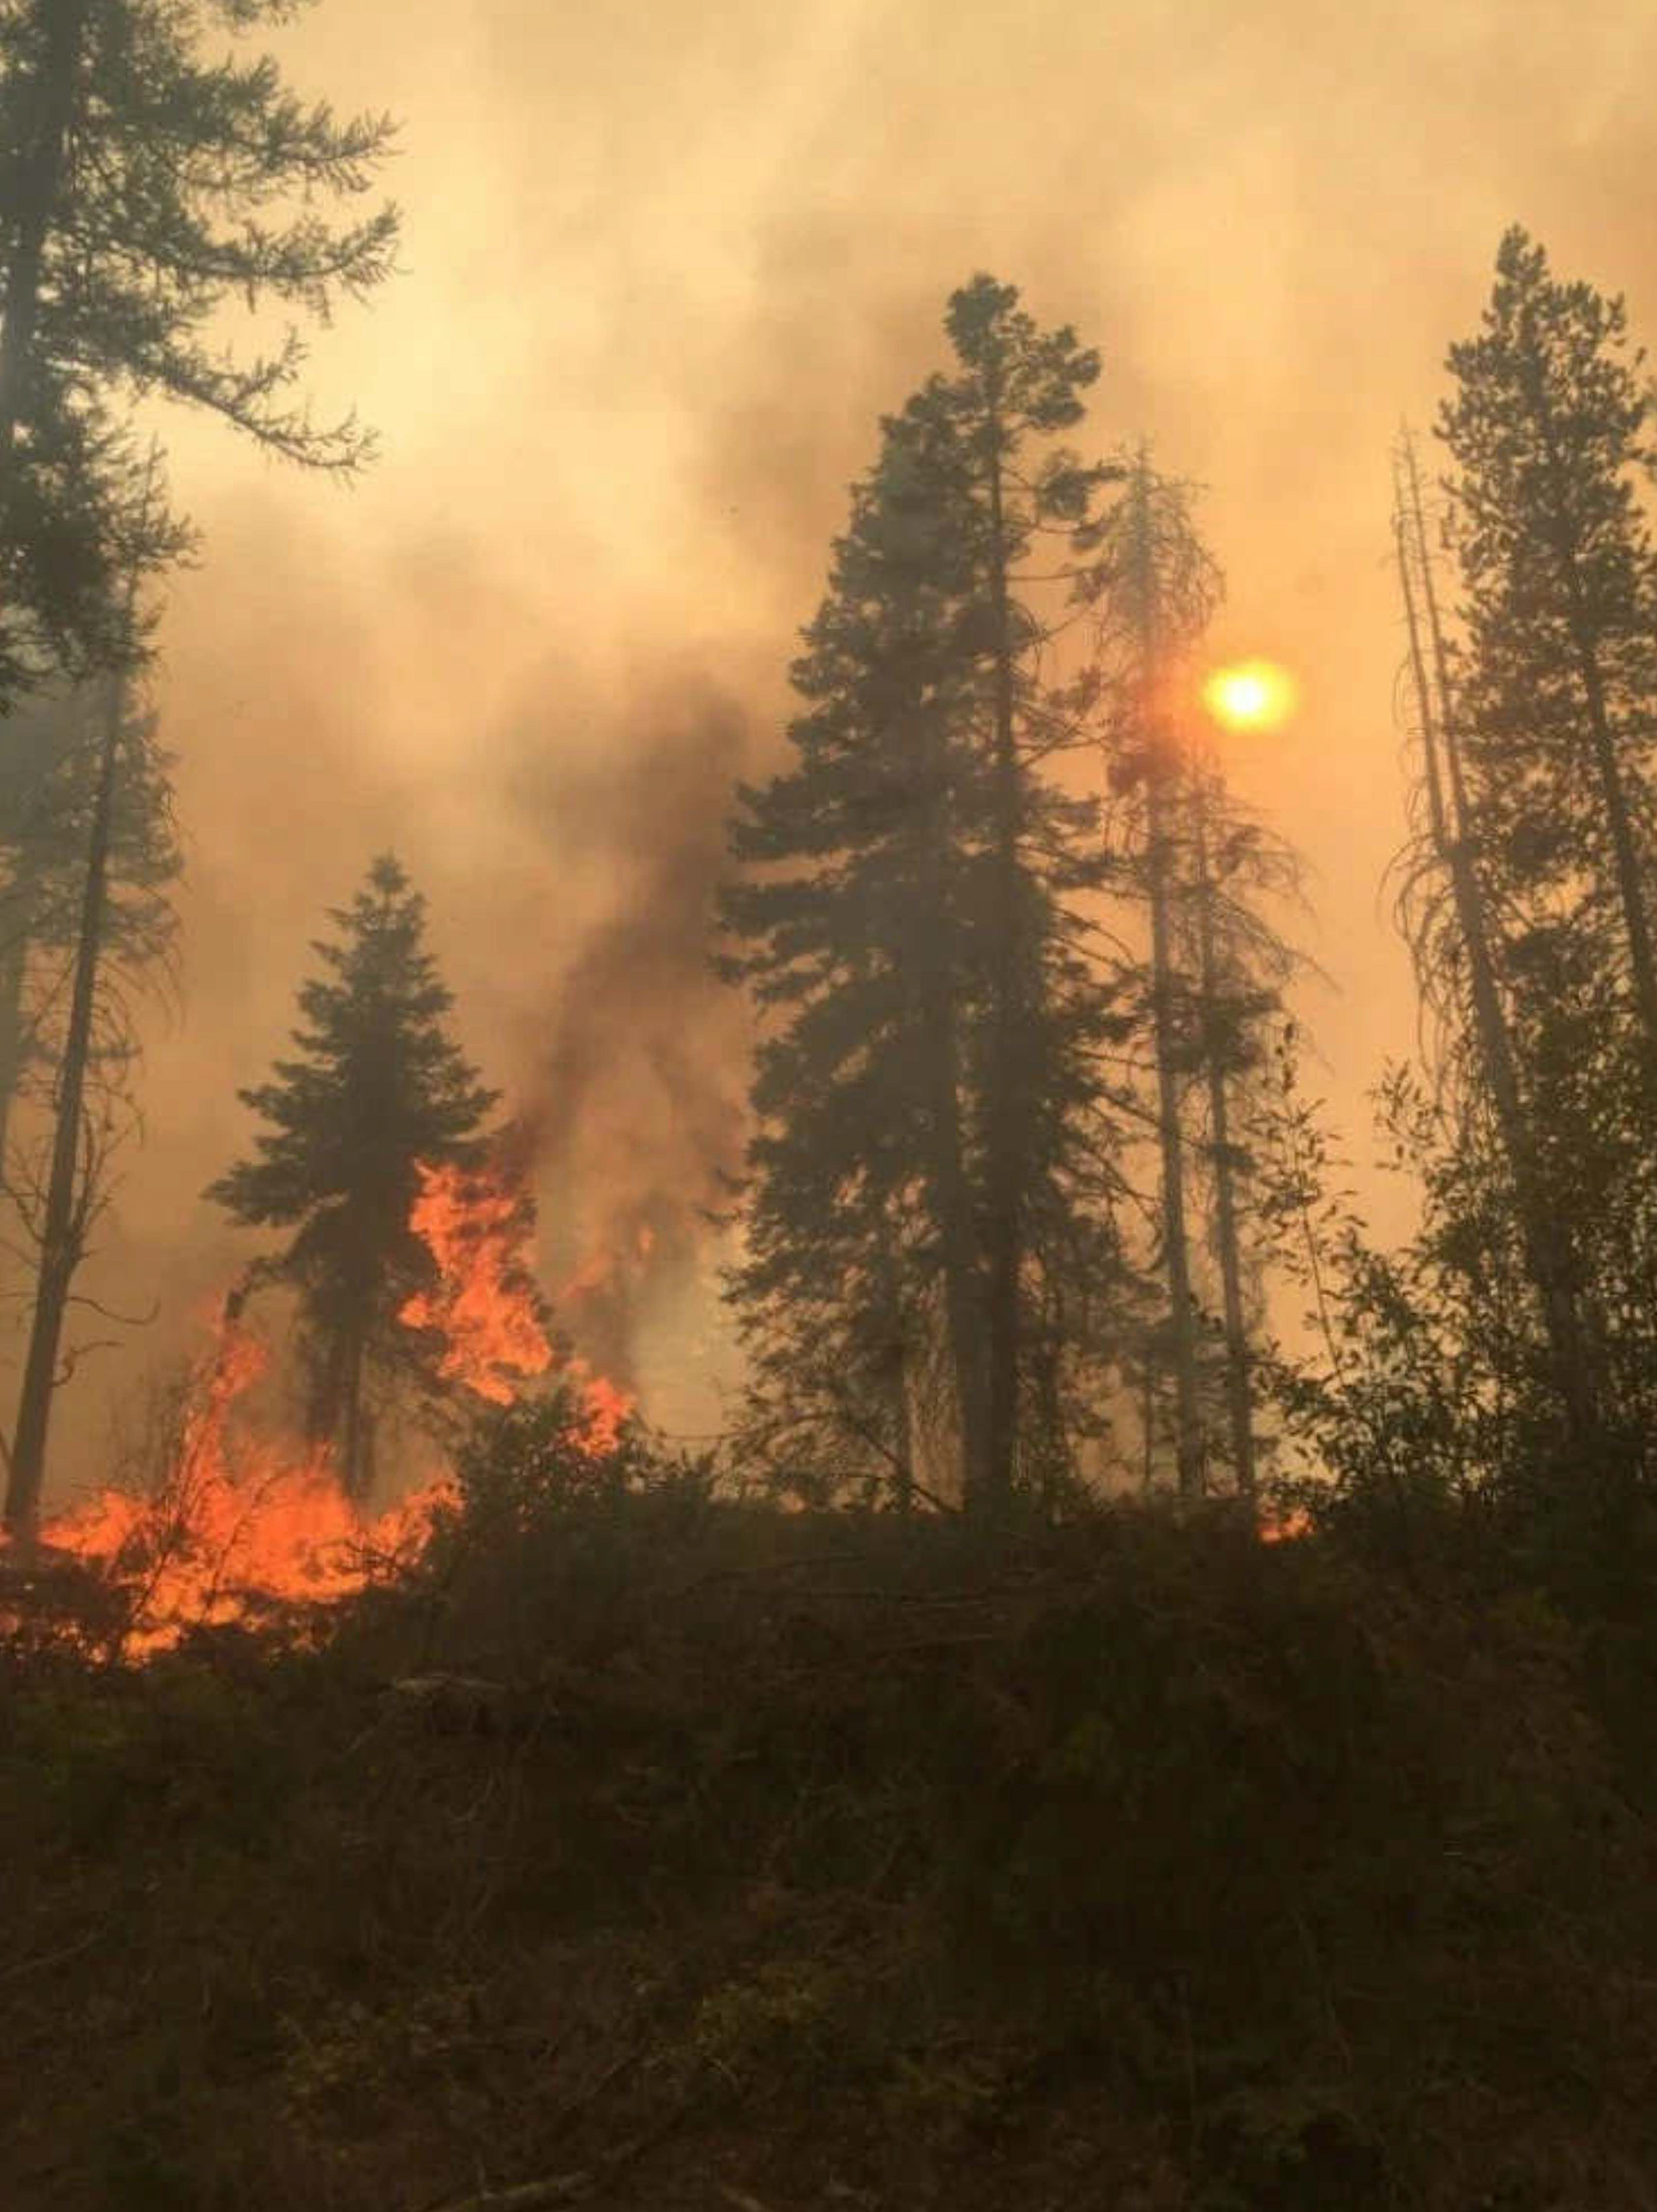 During parts of Boyds Fire, in the Colville area, low-hanging branches and an overabundance of tree saplings provided ladder fuels for fire to spread into the forest's canopy, growing the fire more rapidly. (Photo by Gary Jennings)